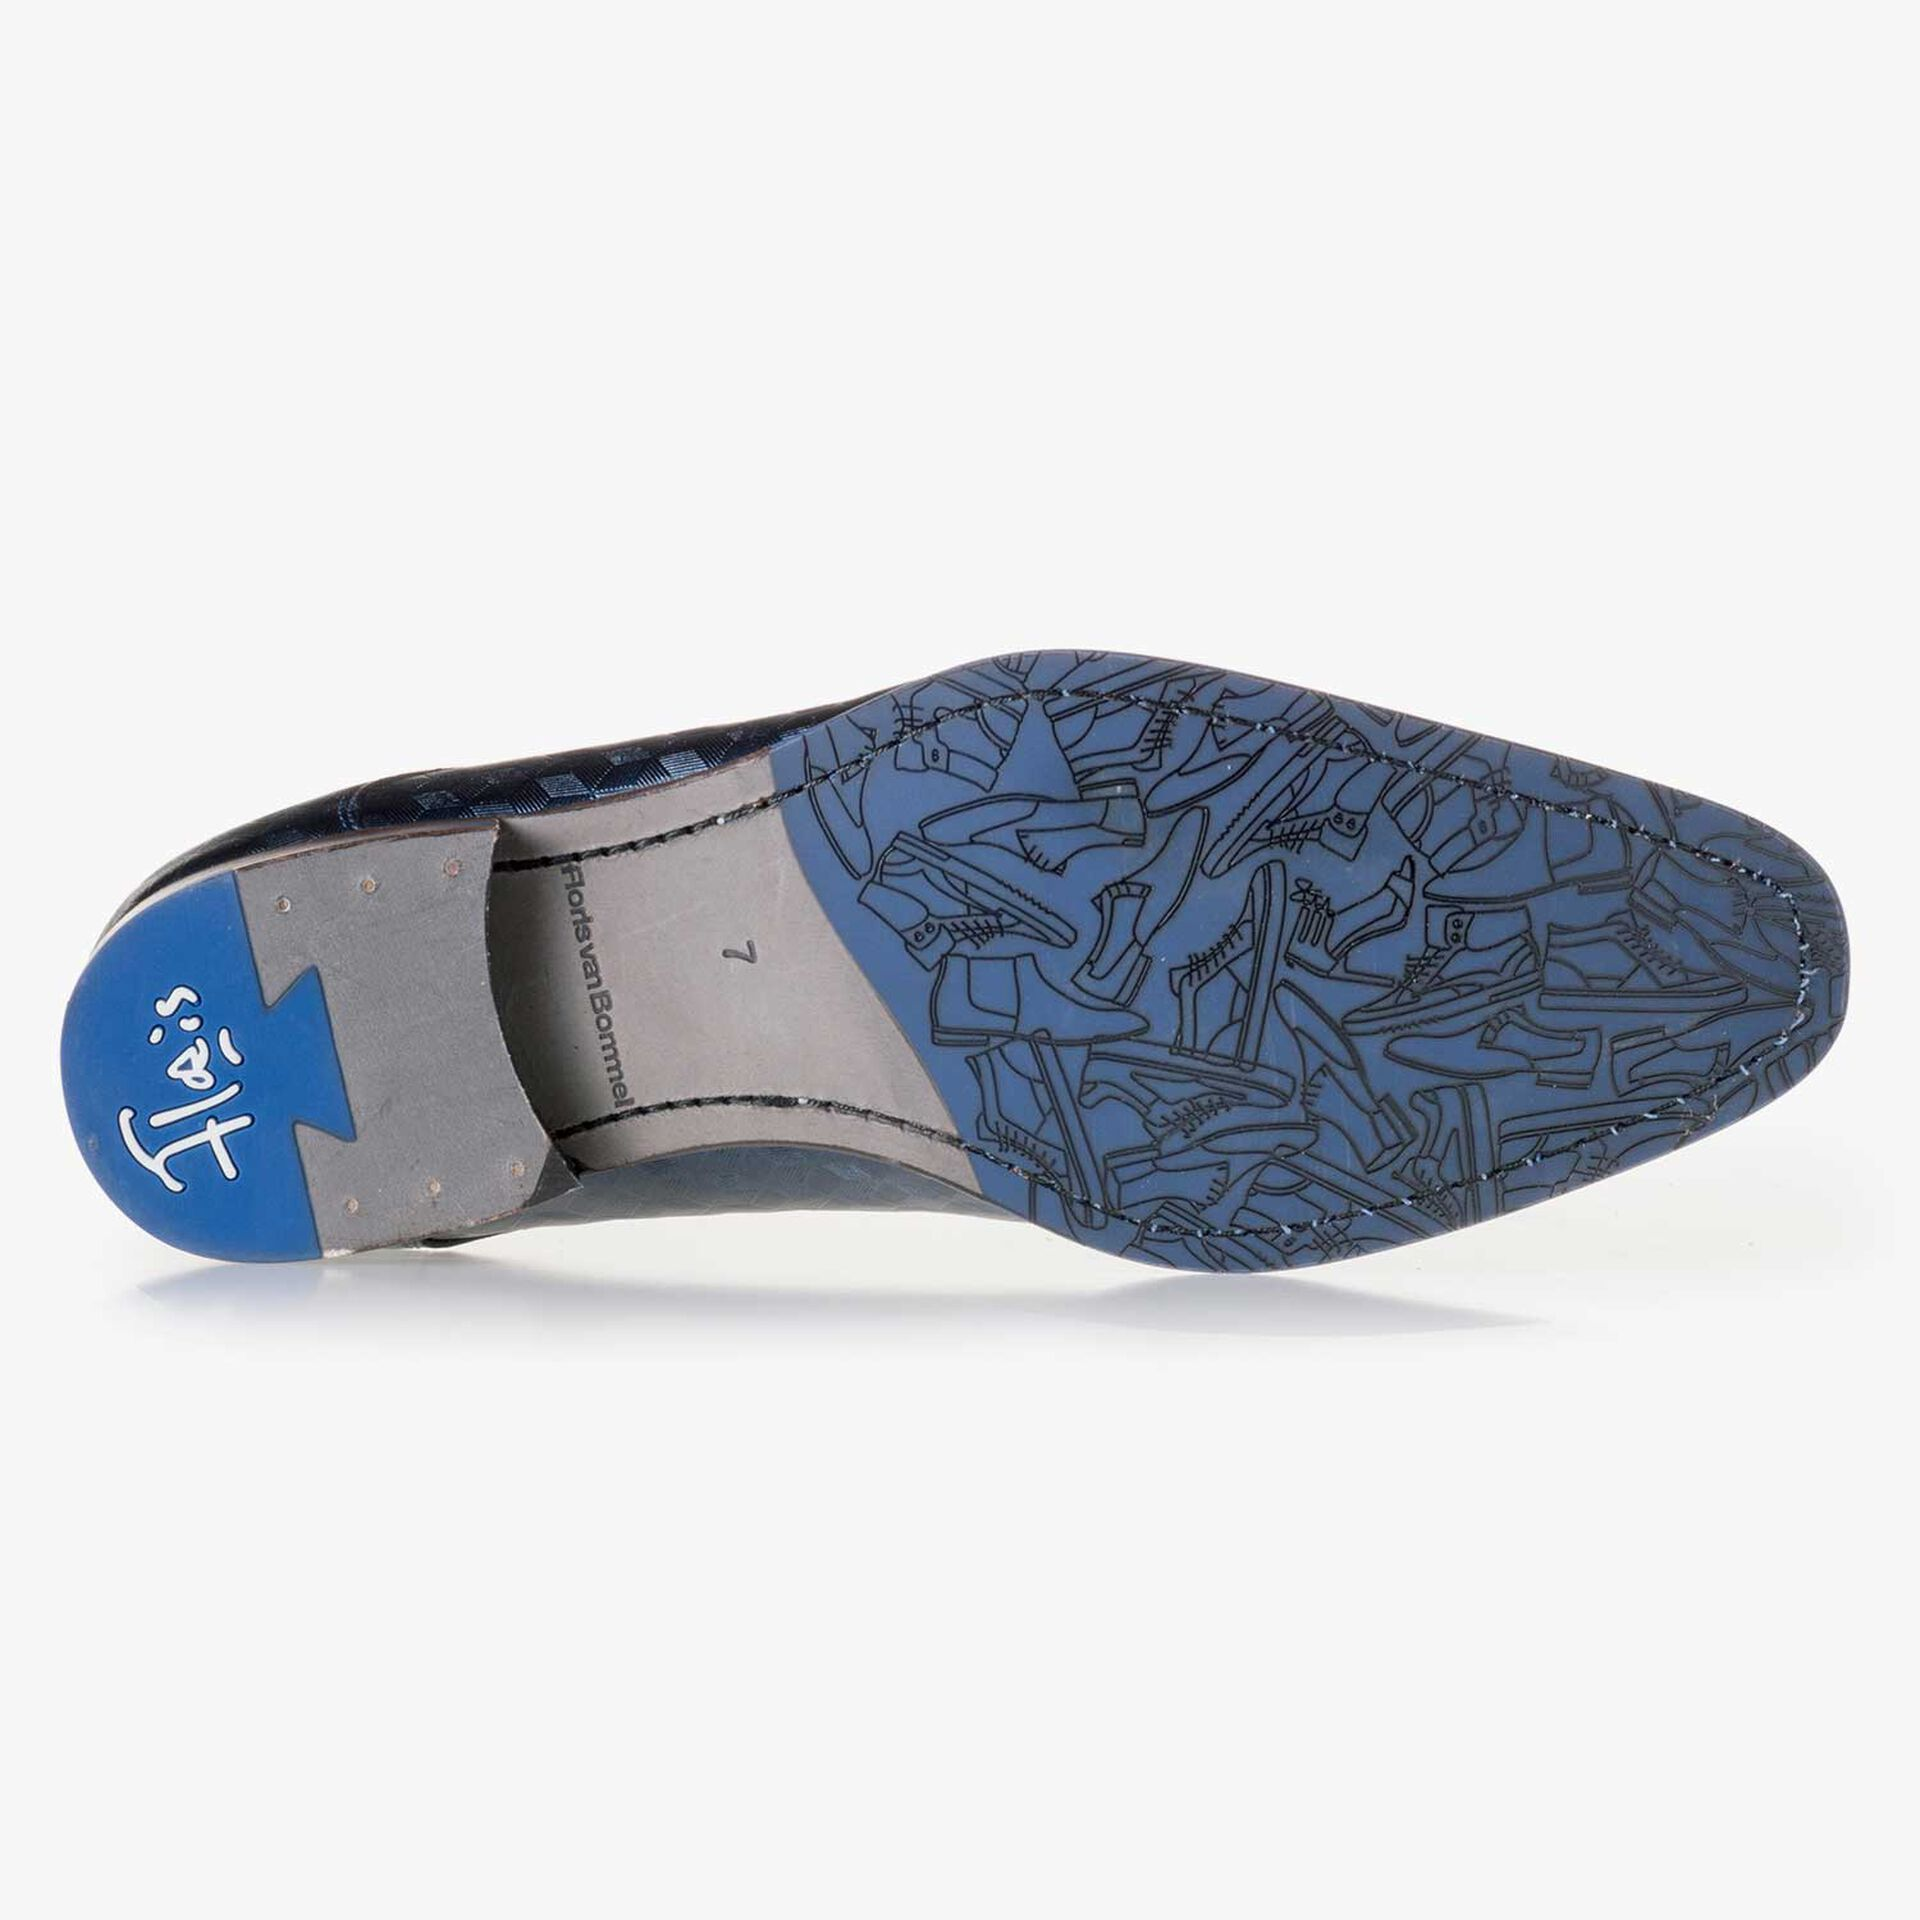 Blue leather lace shoe finished with a hexagon print